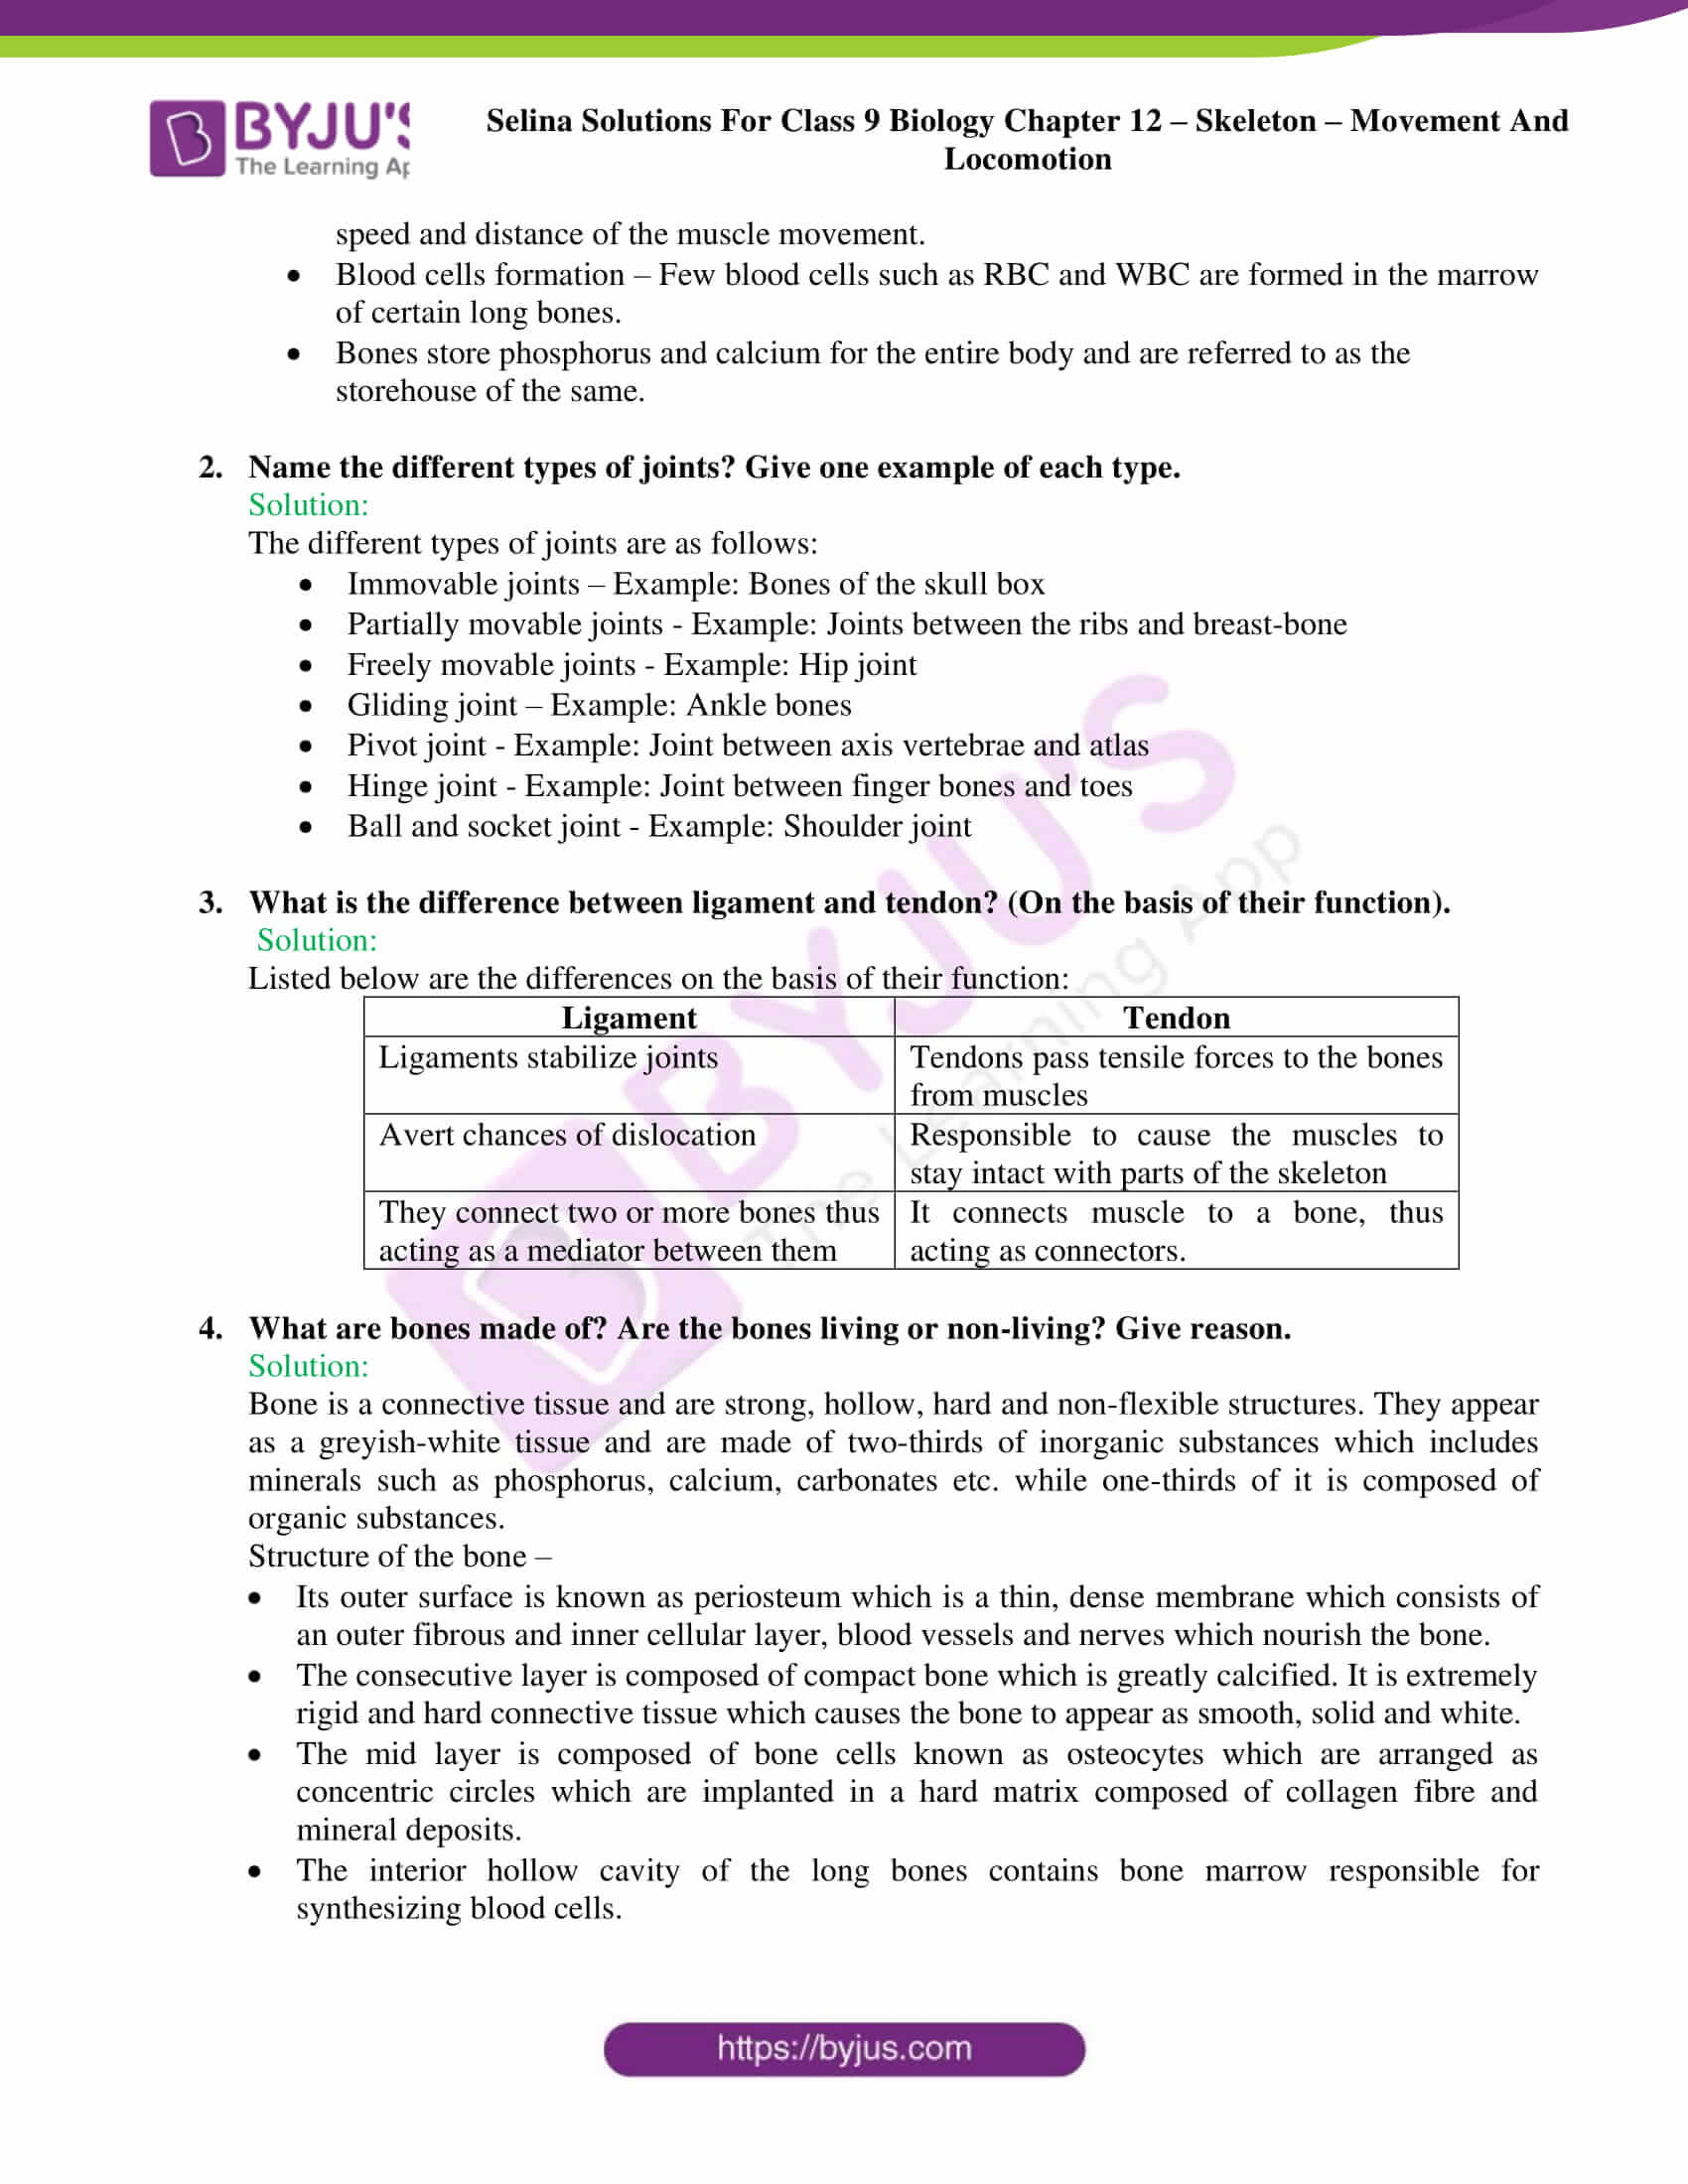 selina Solutions For Class 9 Biology Chapter 12 part 7